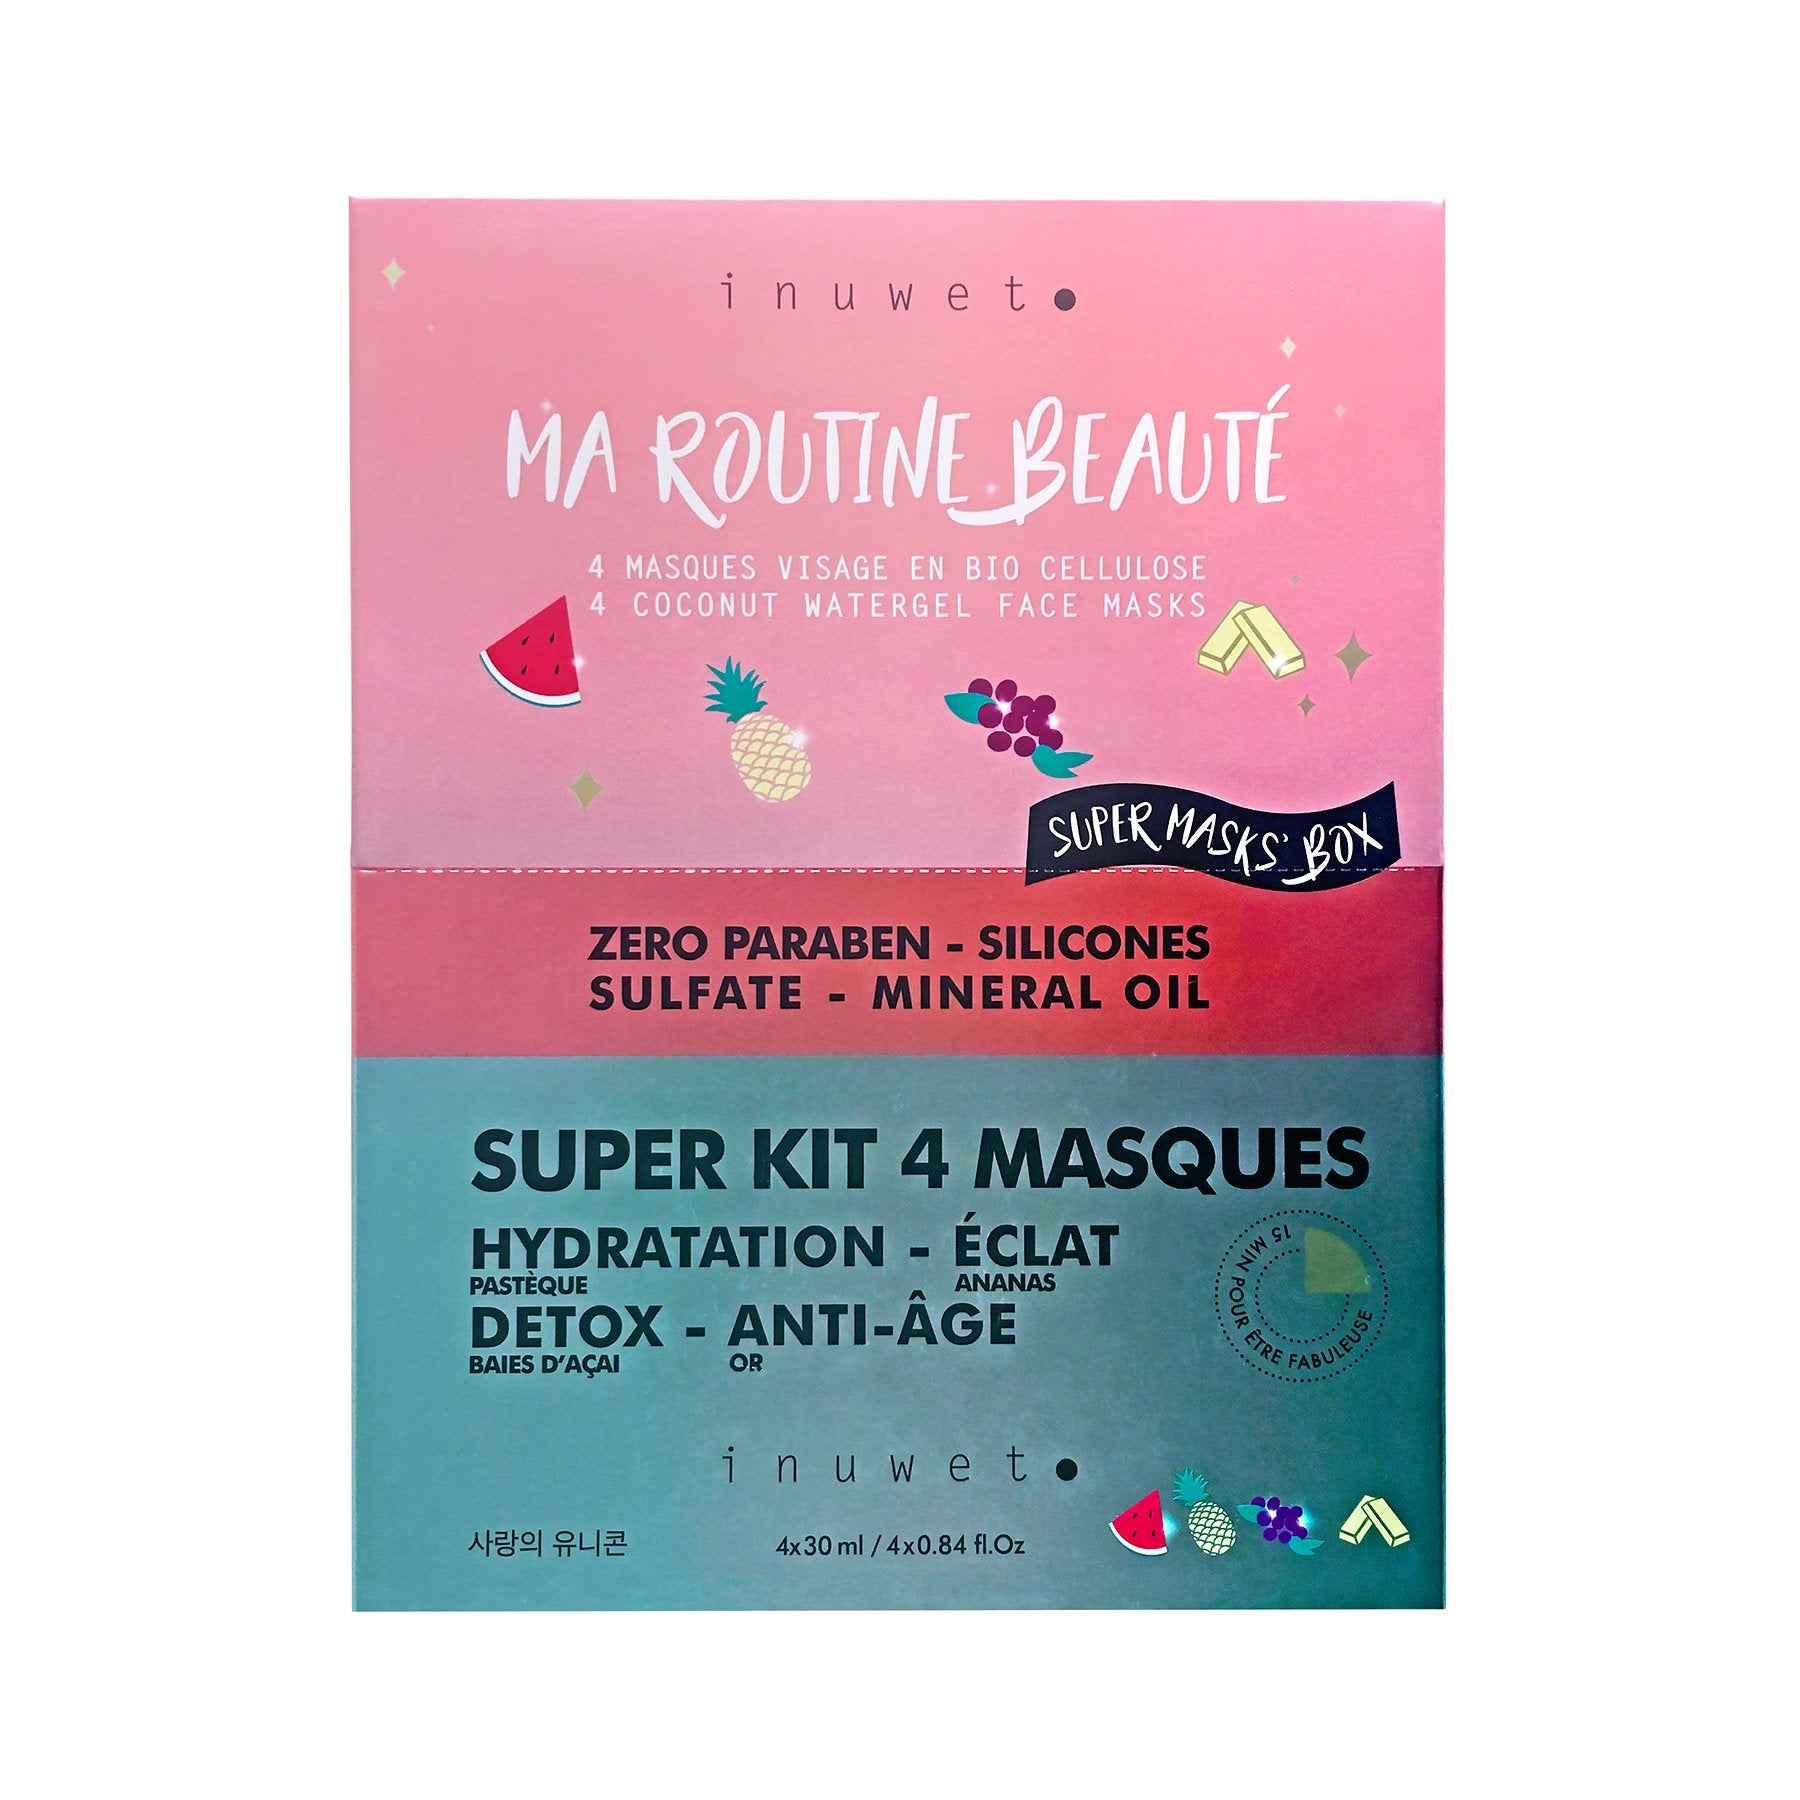 Super Kit 4 Masques